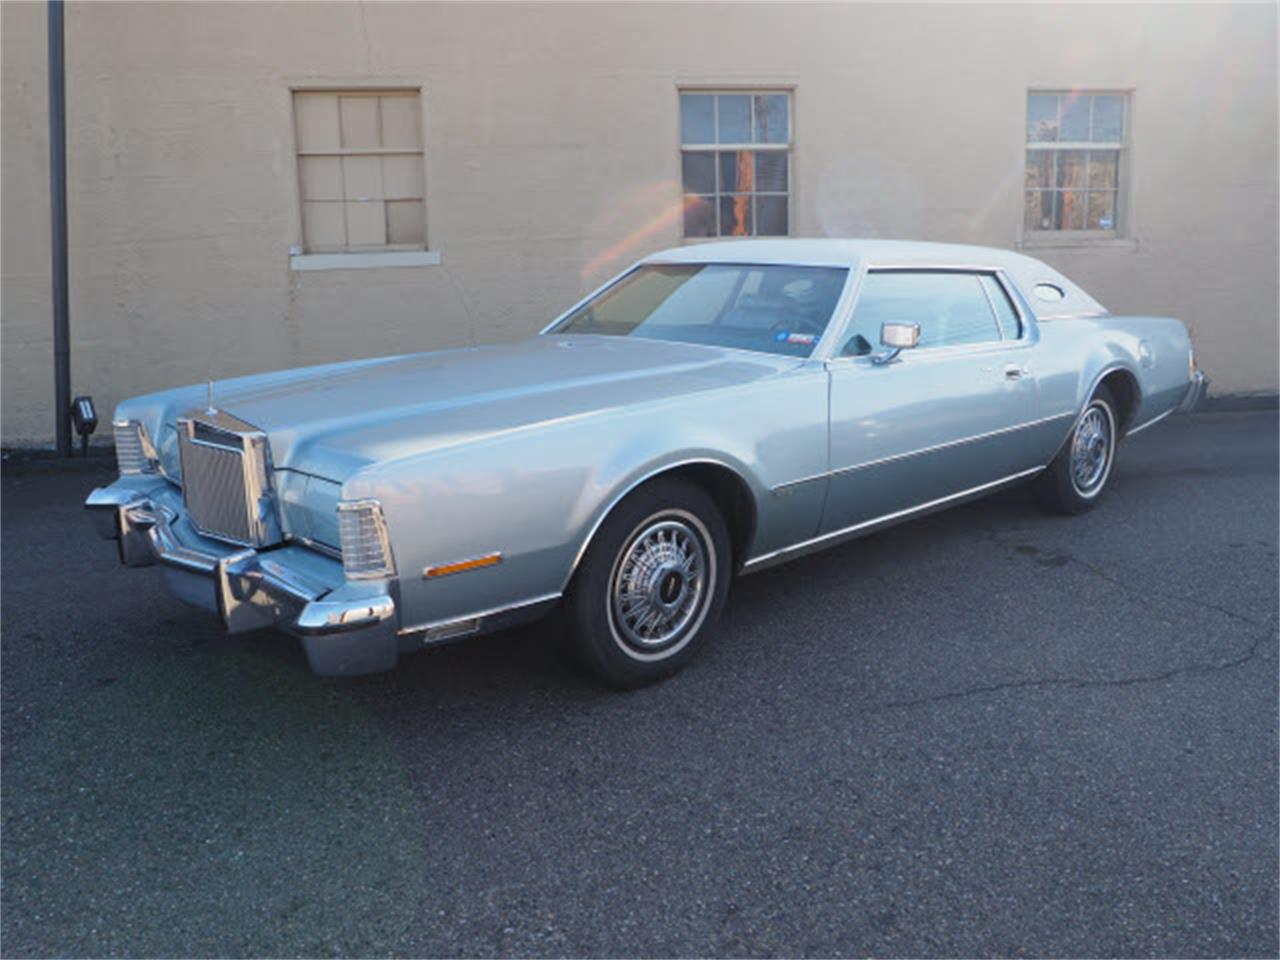 1974 Lincoln Continental (CC-1272120) for sale in Tacoma, Washington